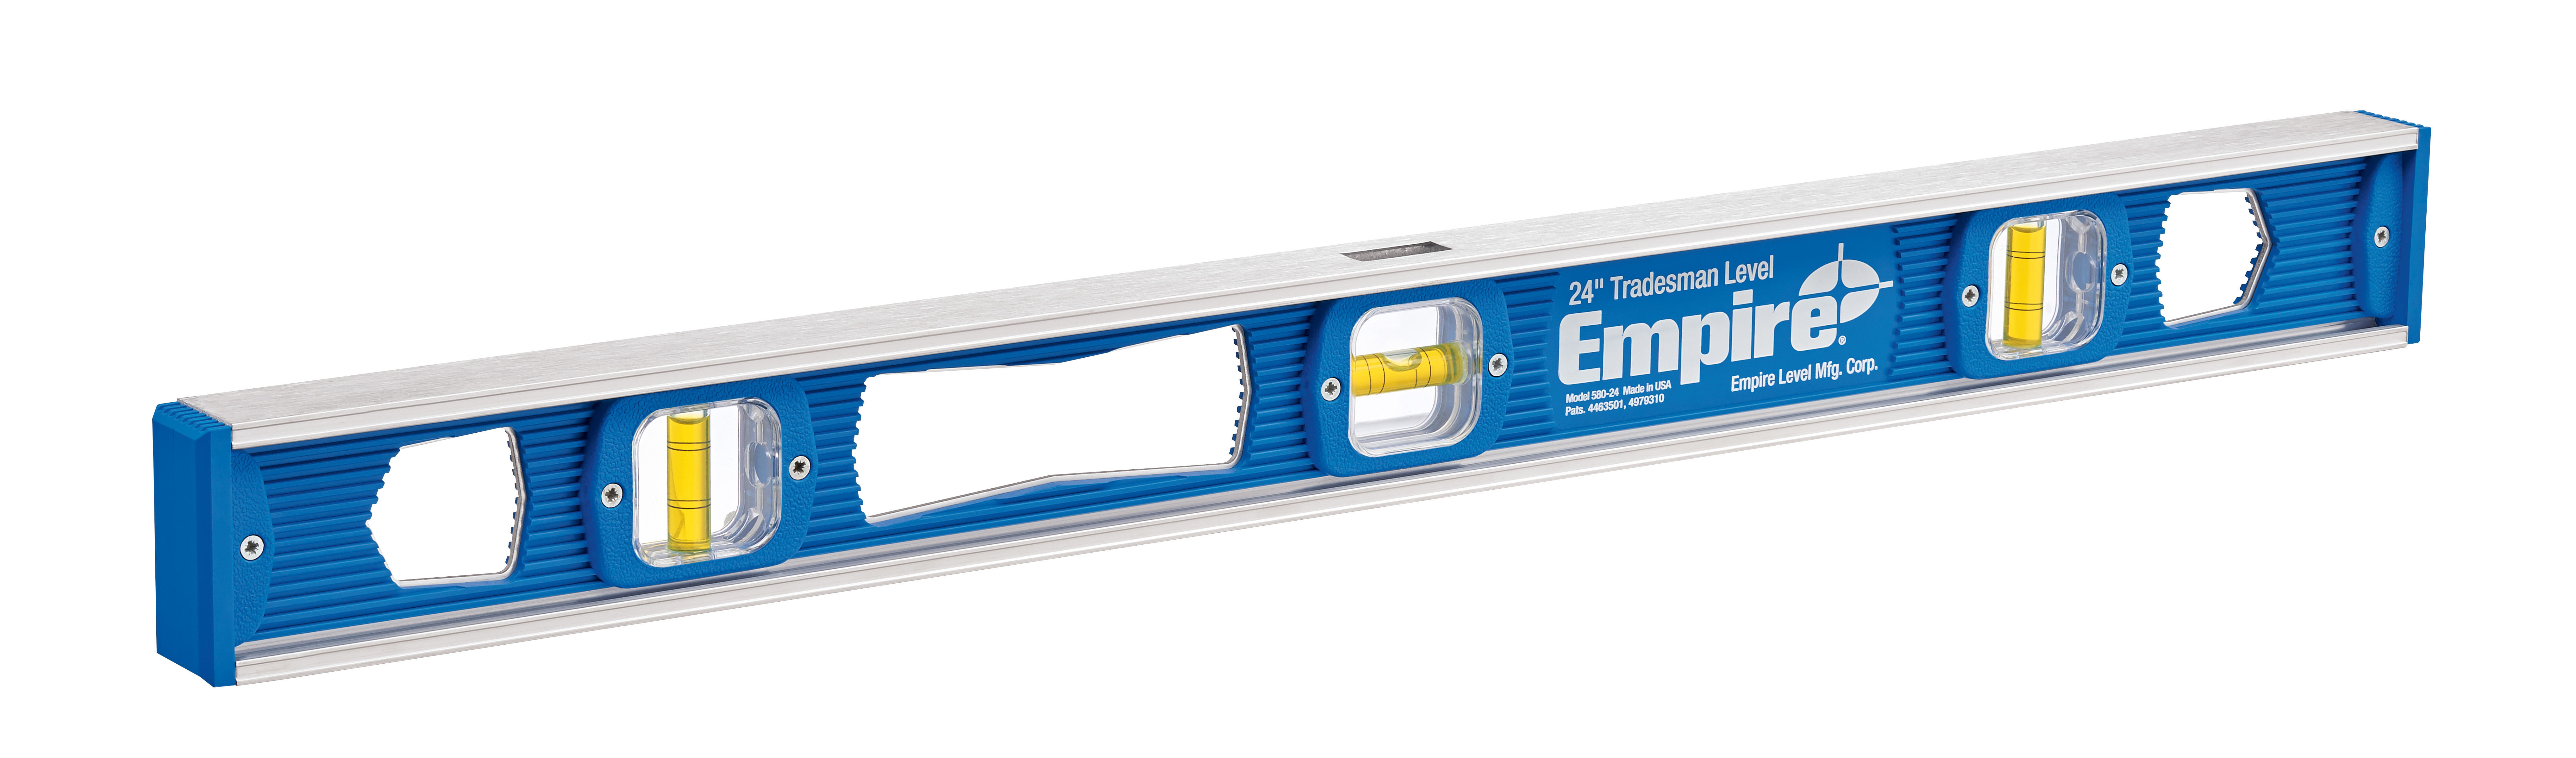 Milwaukee® Empire® 580-24 Non-Magnetic I-Beam Level, 24 in L, 3 Vials, Aluminum, (1) Level, (2) Plumb Vial Position, 0.001 in Accuracy